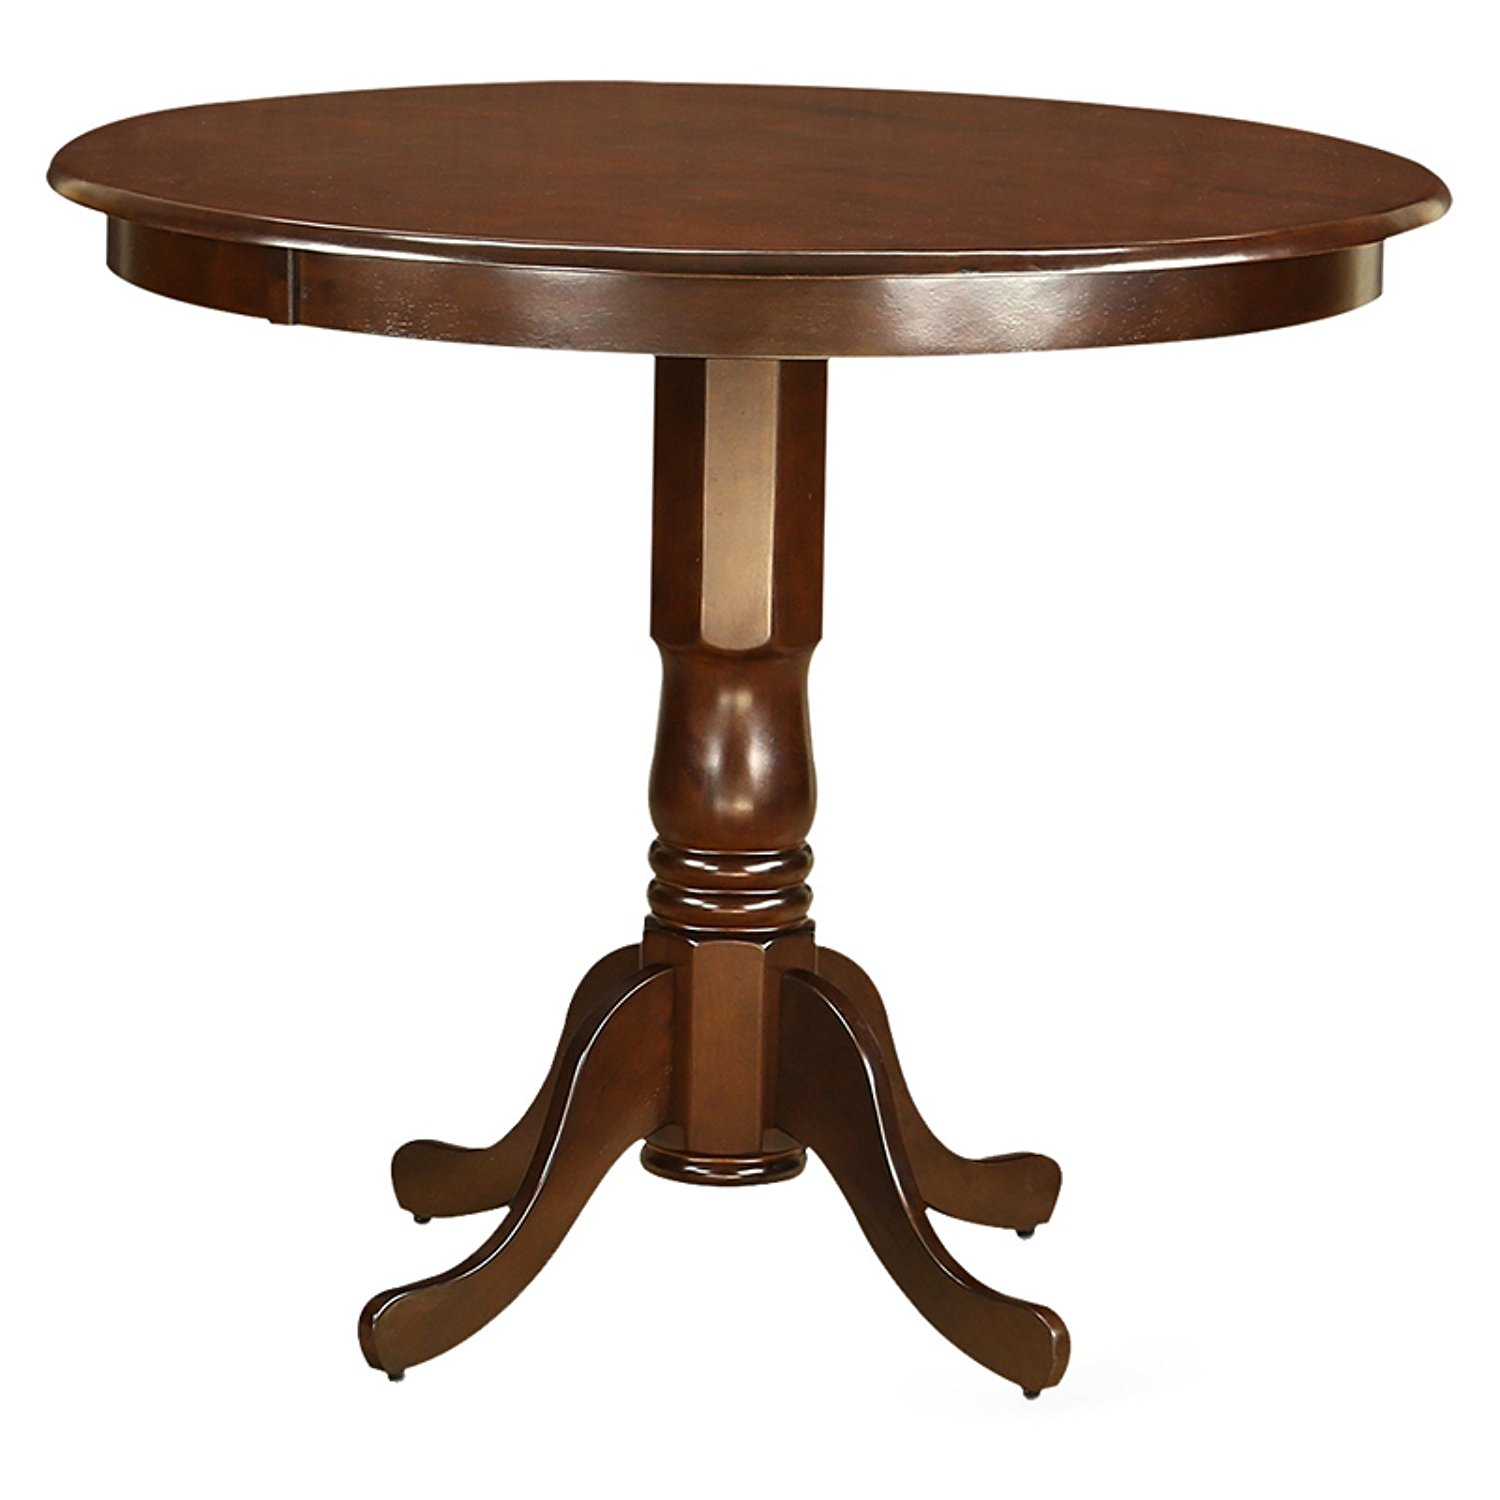 45 Inch Round Pedestal Counter Height Dining Table, Constructed of Solid Wood, This Dining Table is Supported by a Pedestal Base for Stable Use, Transitional Design Elements, Sleek Shape